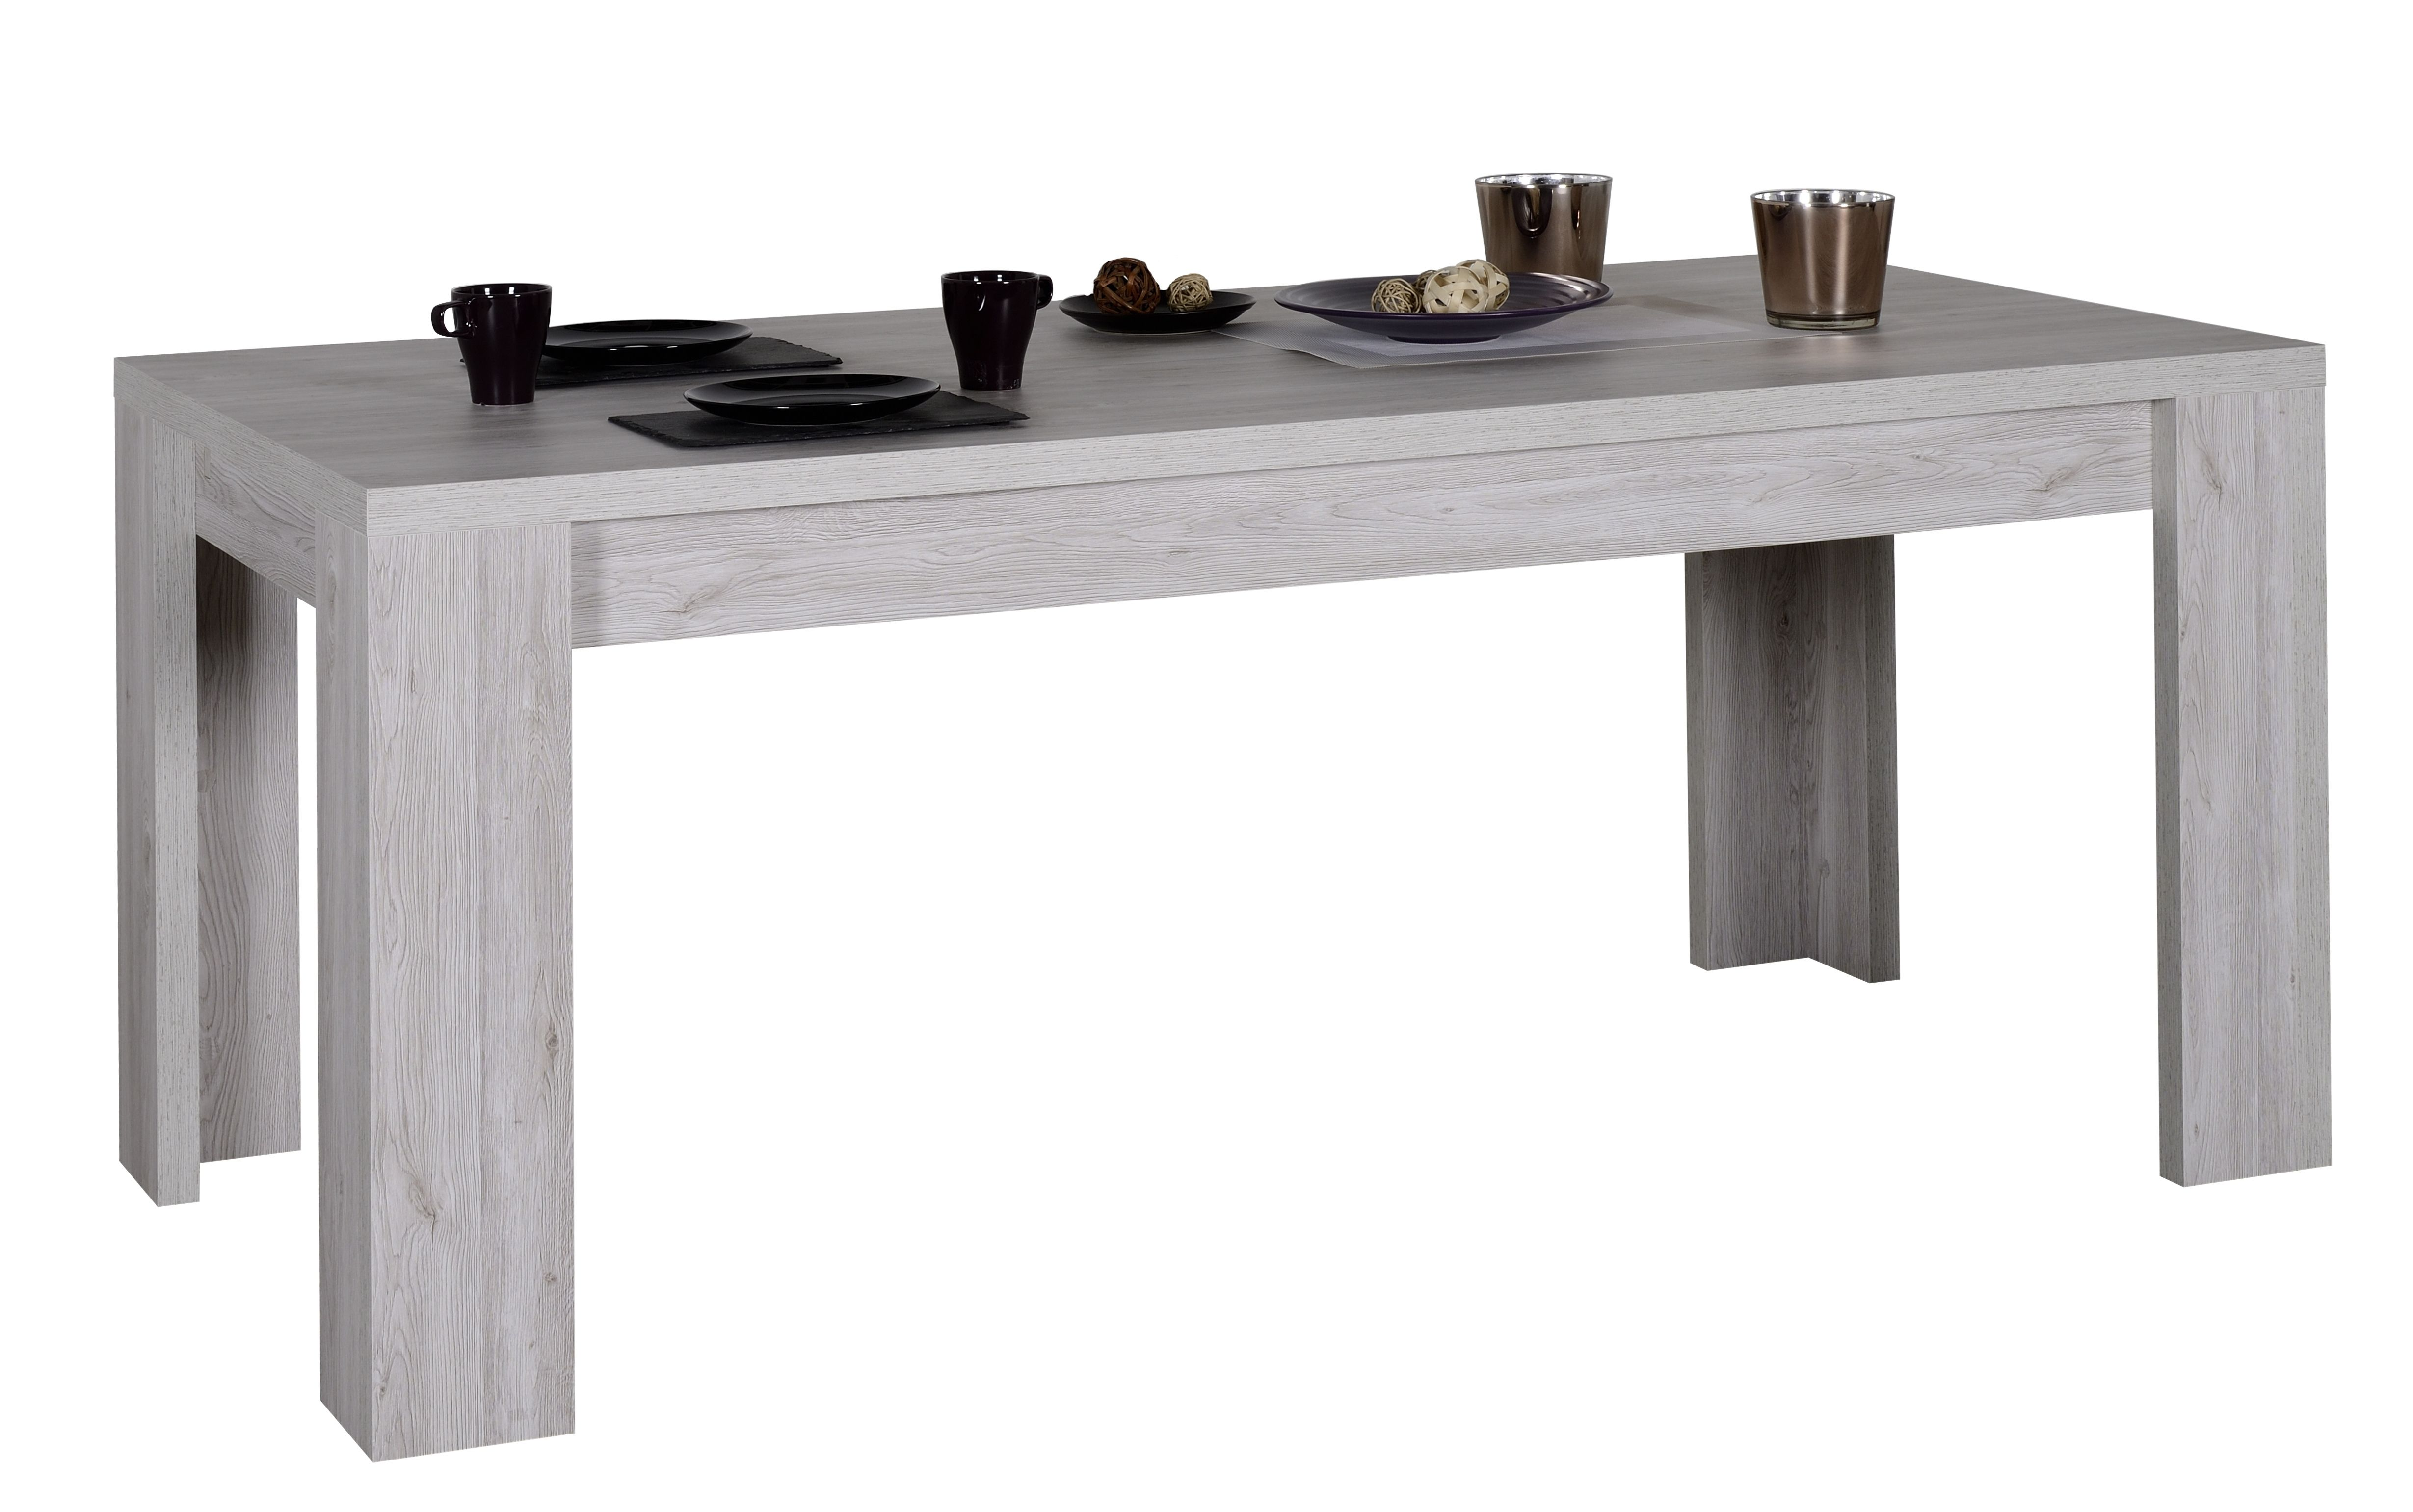 Table Rectangulaire Extensible Bois De Chene Gris Maeva Lestendances Fr Mobilier De Salon Bois De Chene Decoration Maison